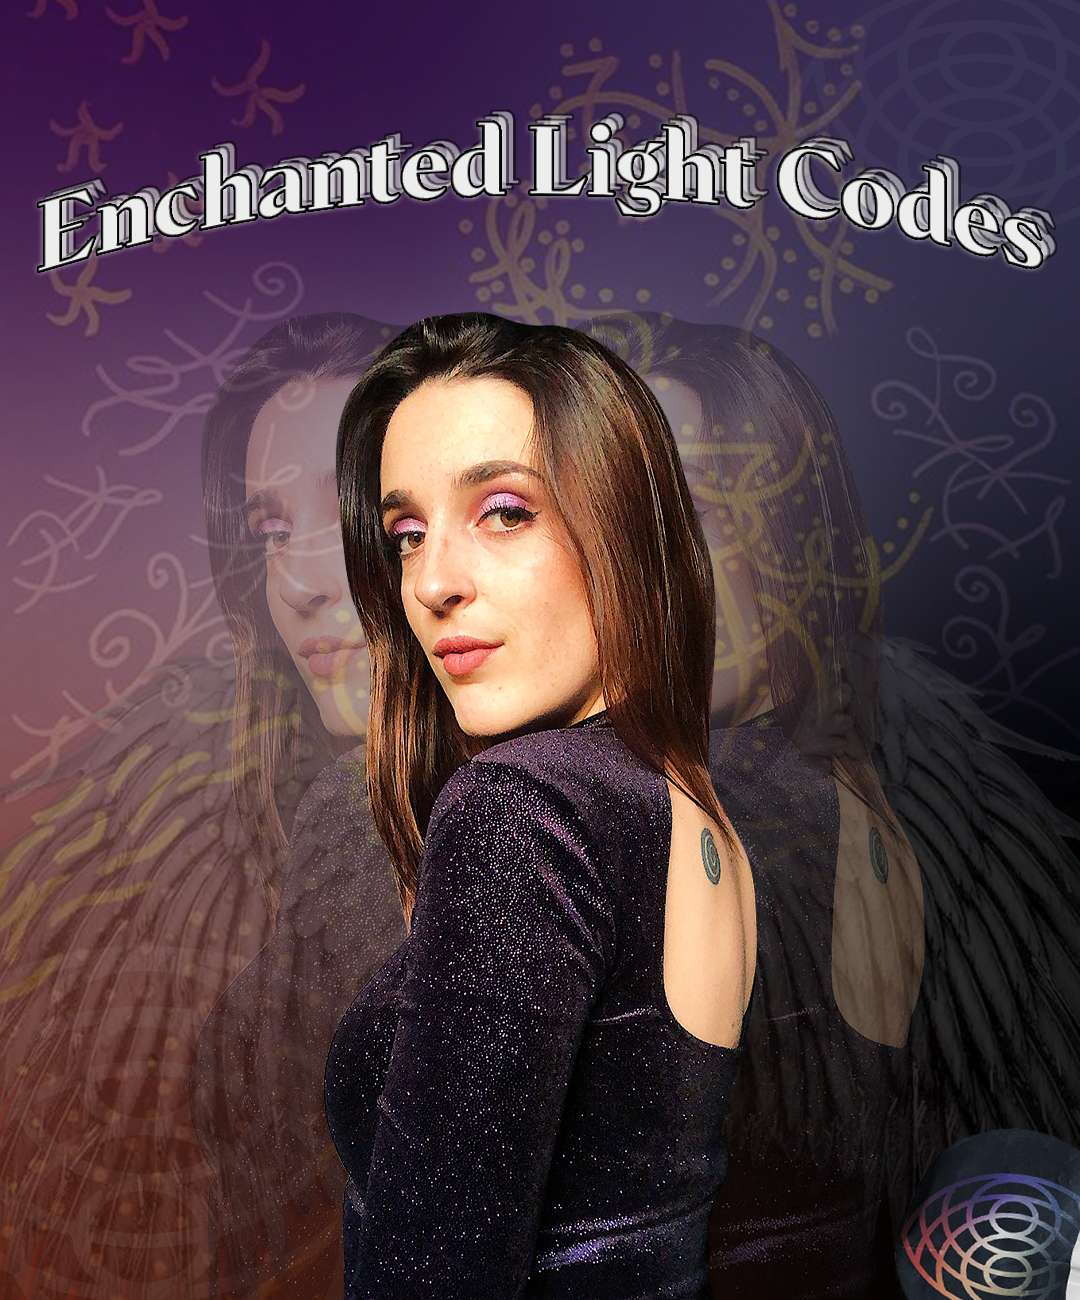 Enchanted Light Codes Door Myrthe Pellemans